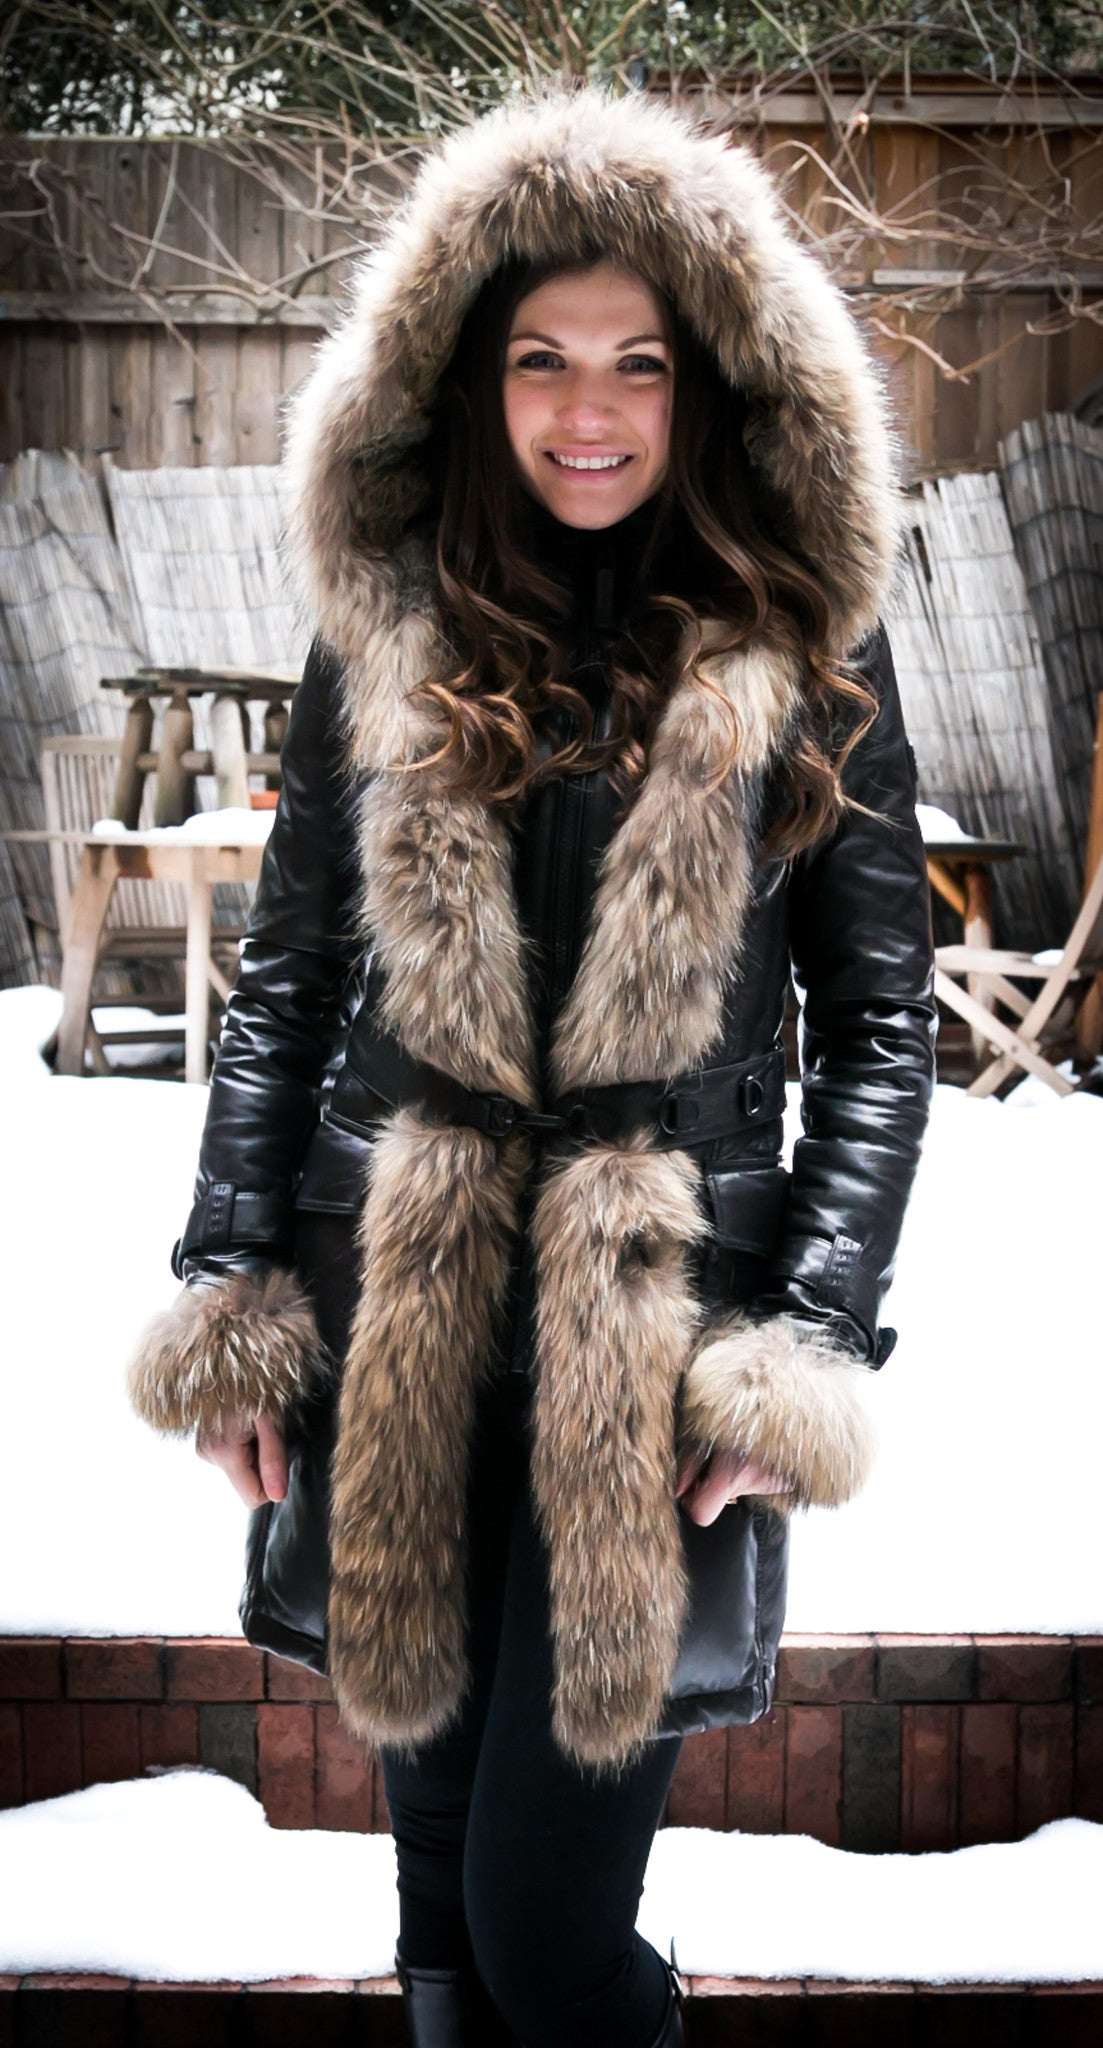 cc908ca7879e Rita Down Coat With Fur Hood - Dejavu NYC